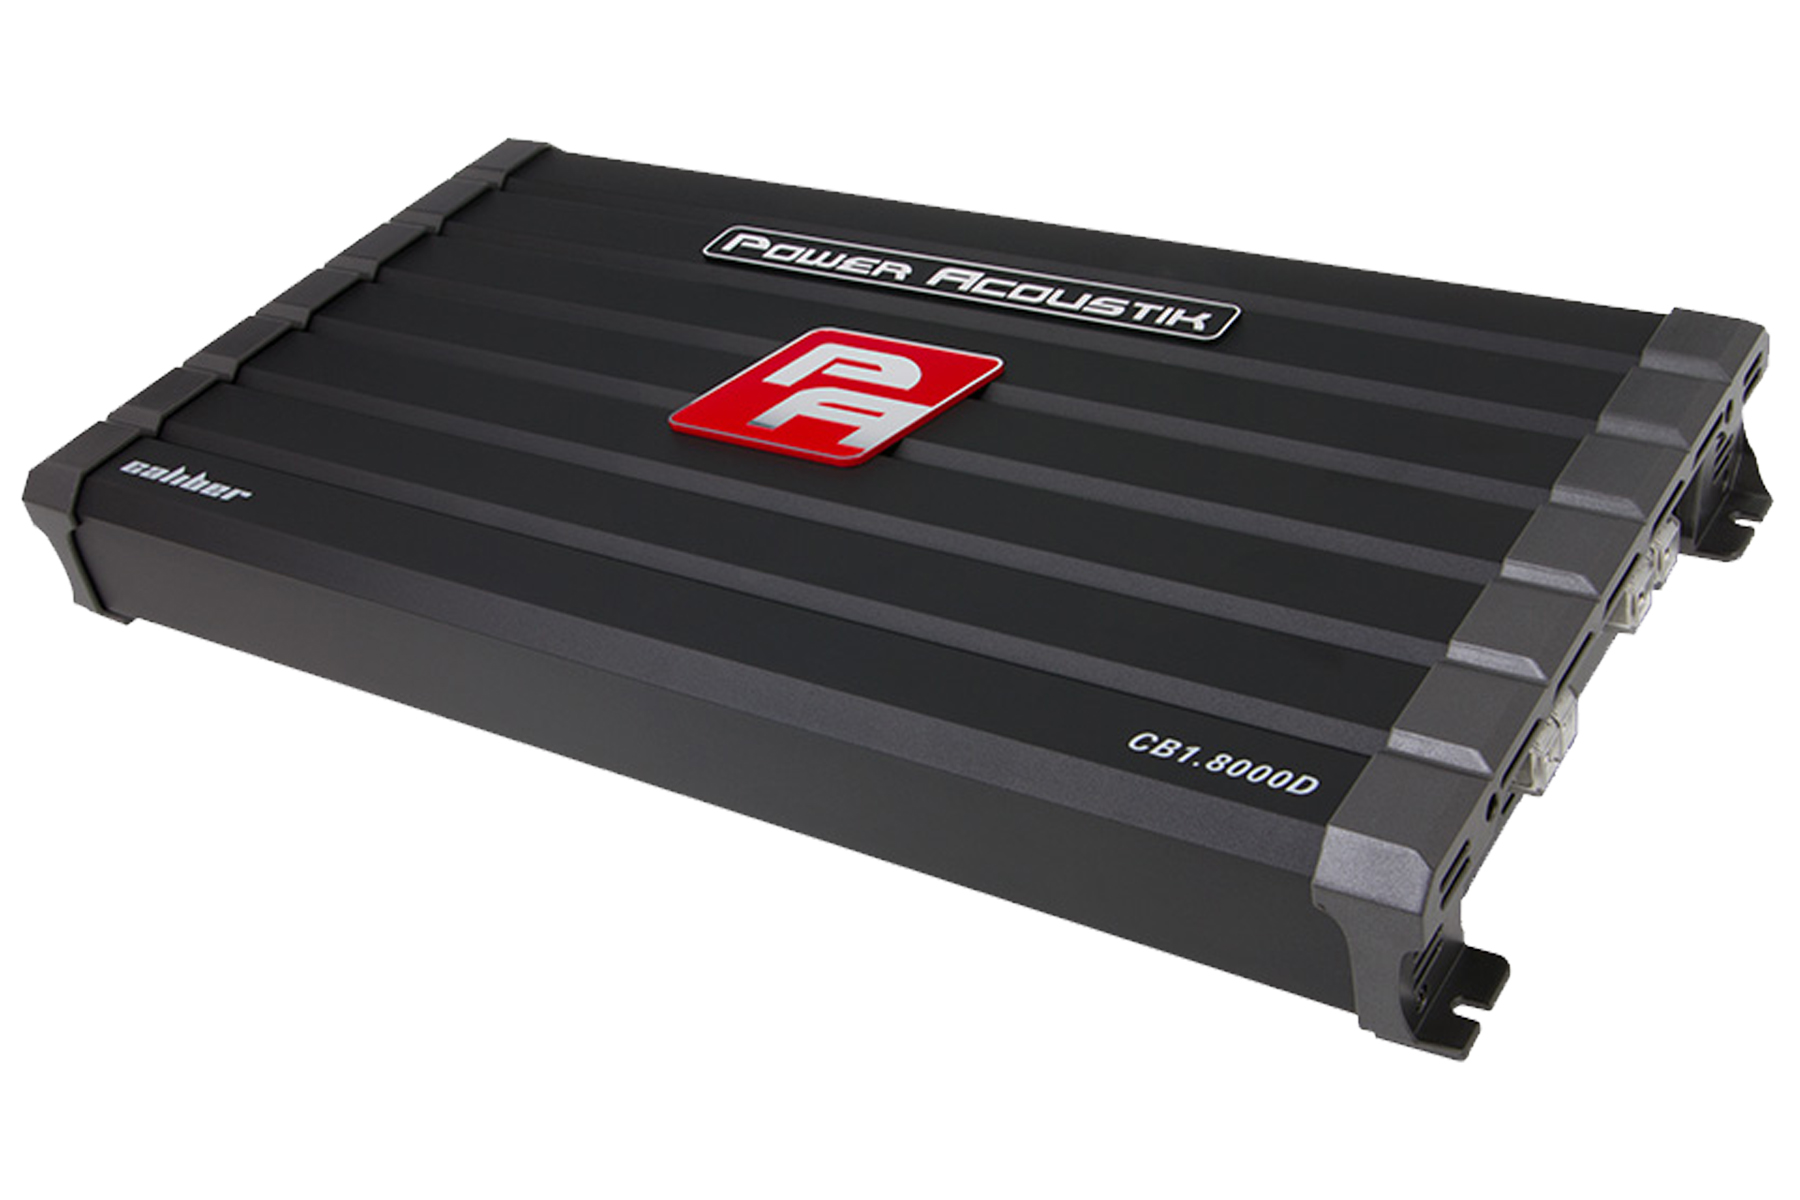 Power Acoustik CB1-8000D 4000 Watt RMS Mono Amplifier Car Audio